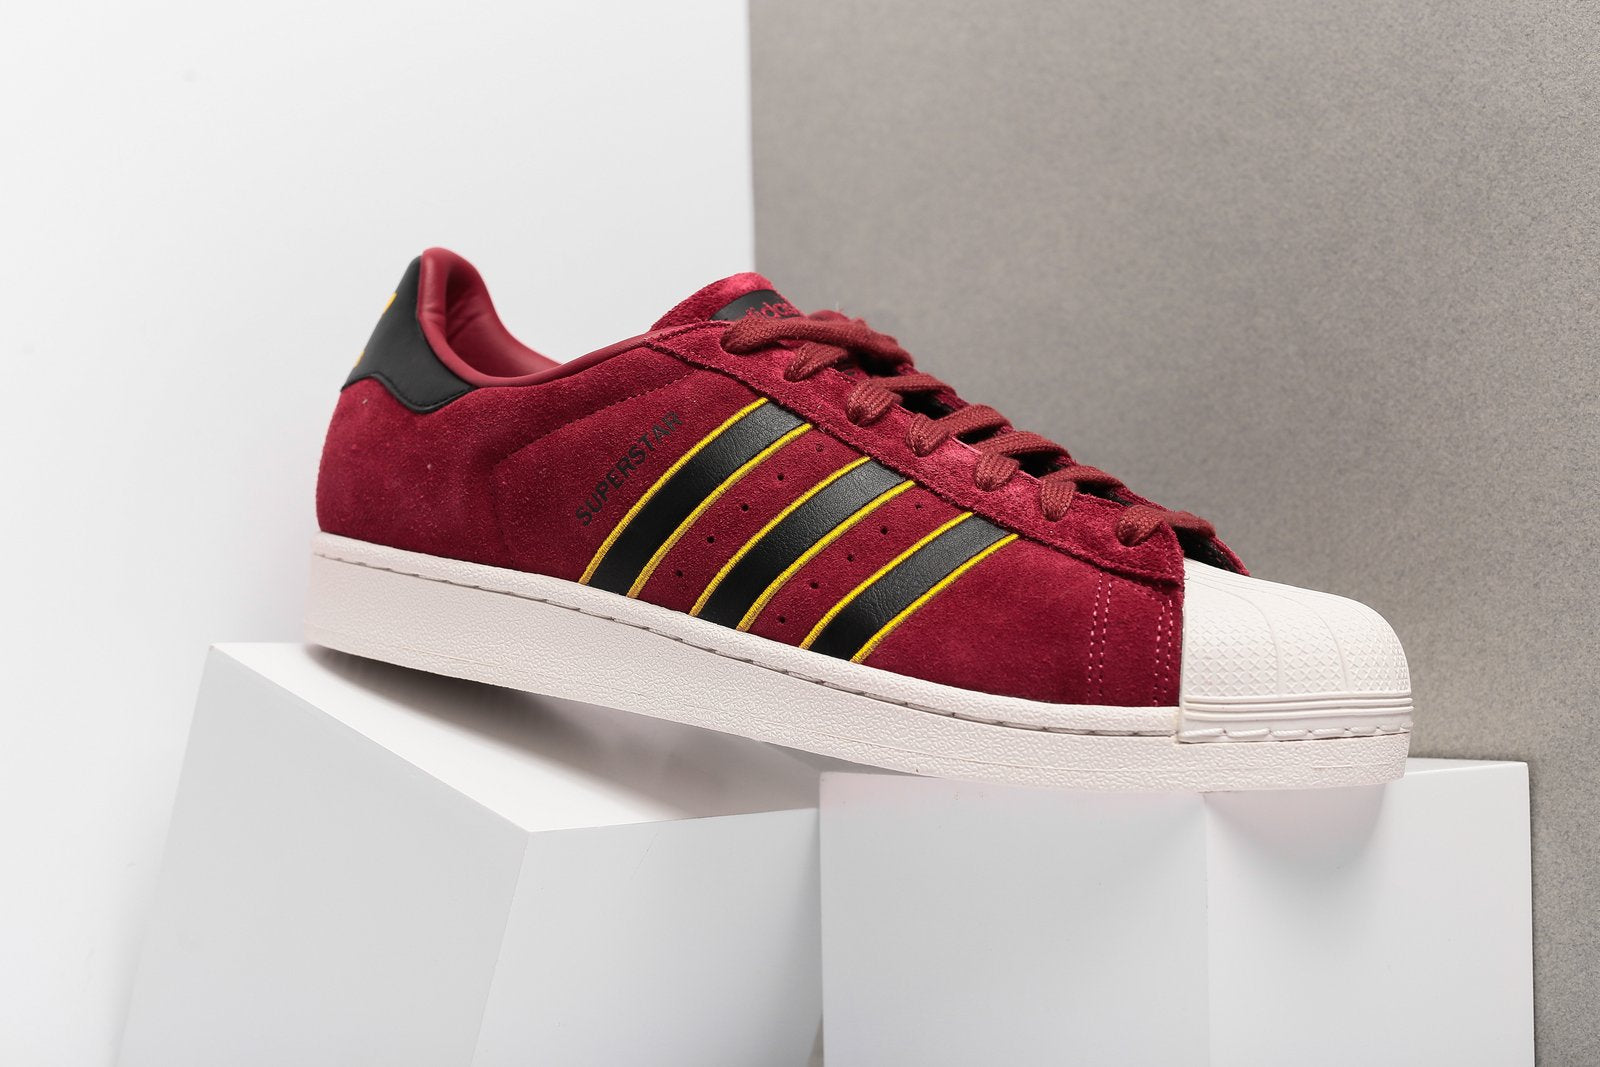 Adidas Superstar 80s butik